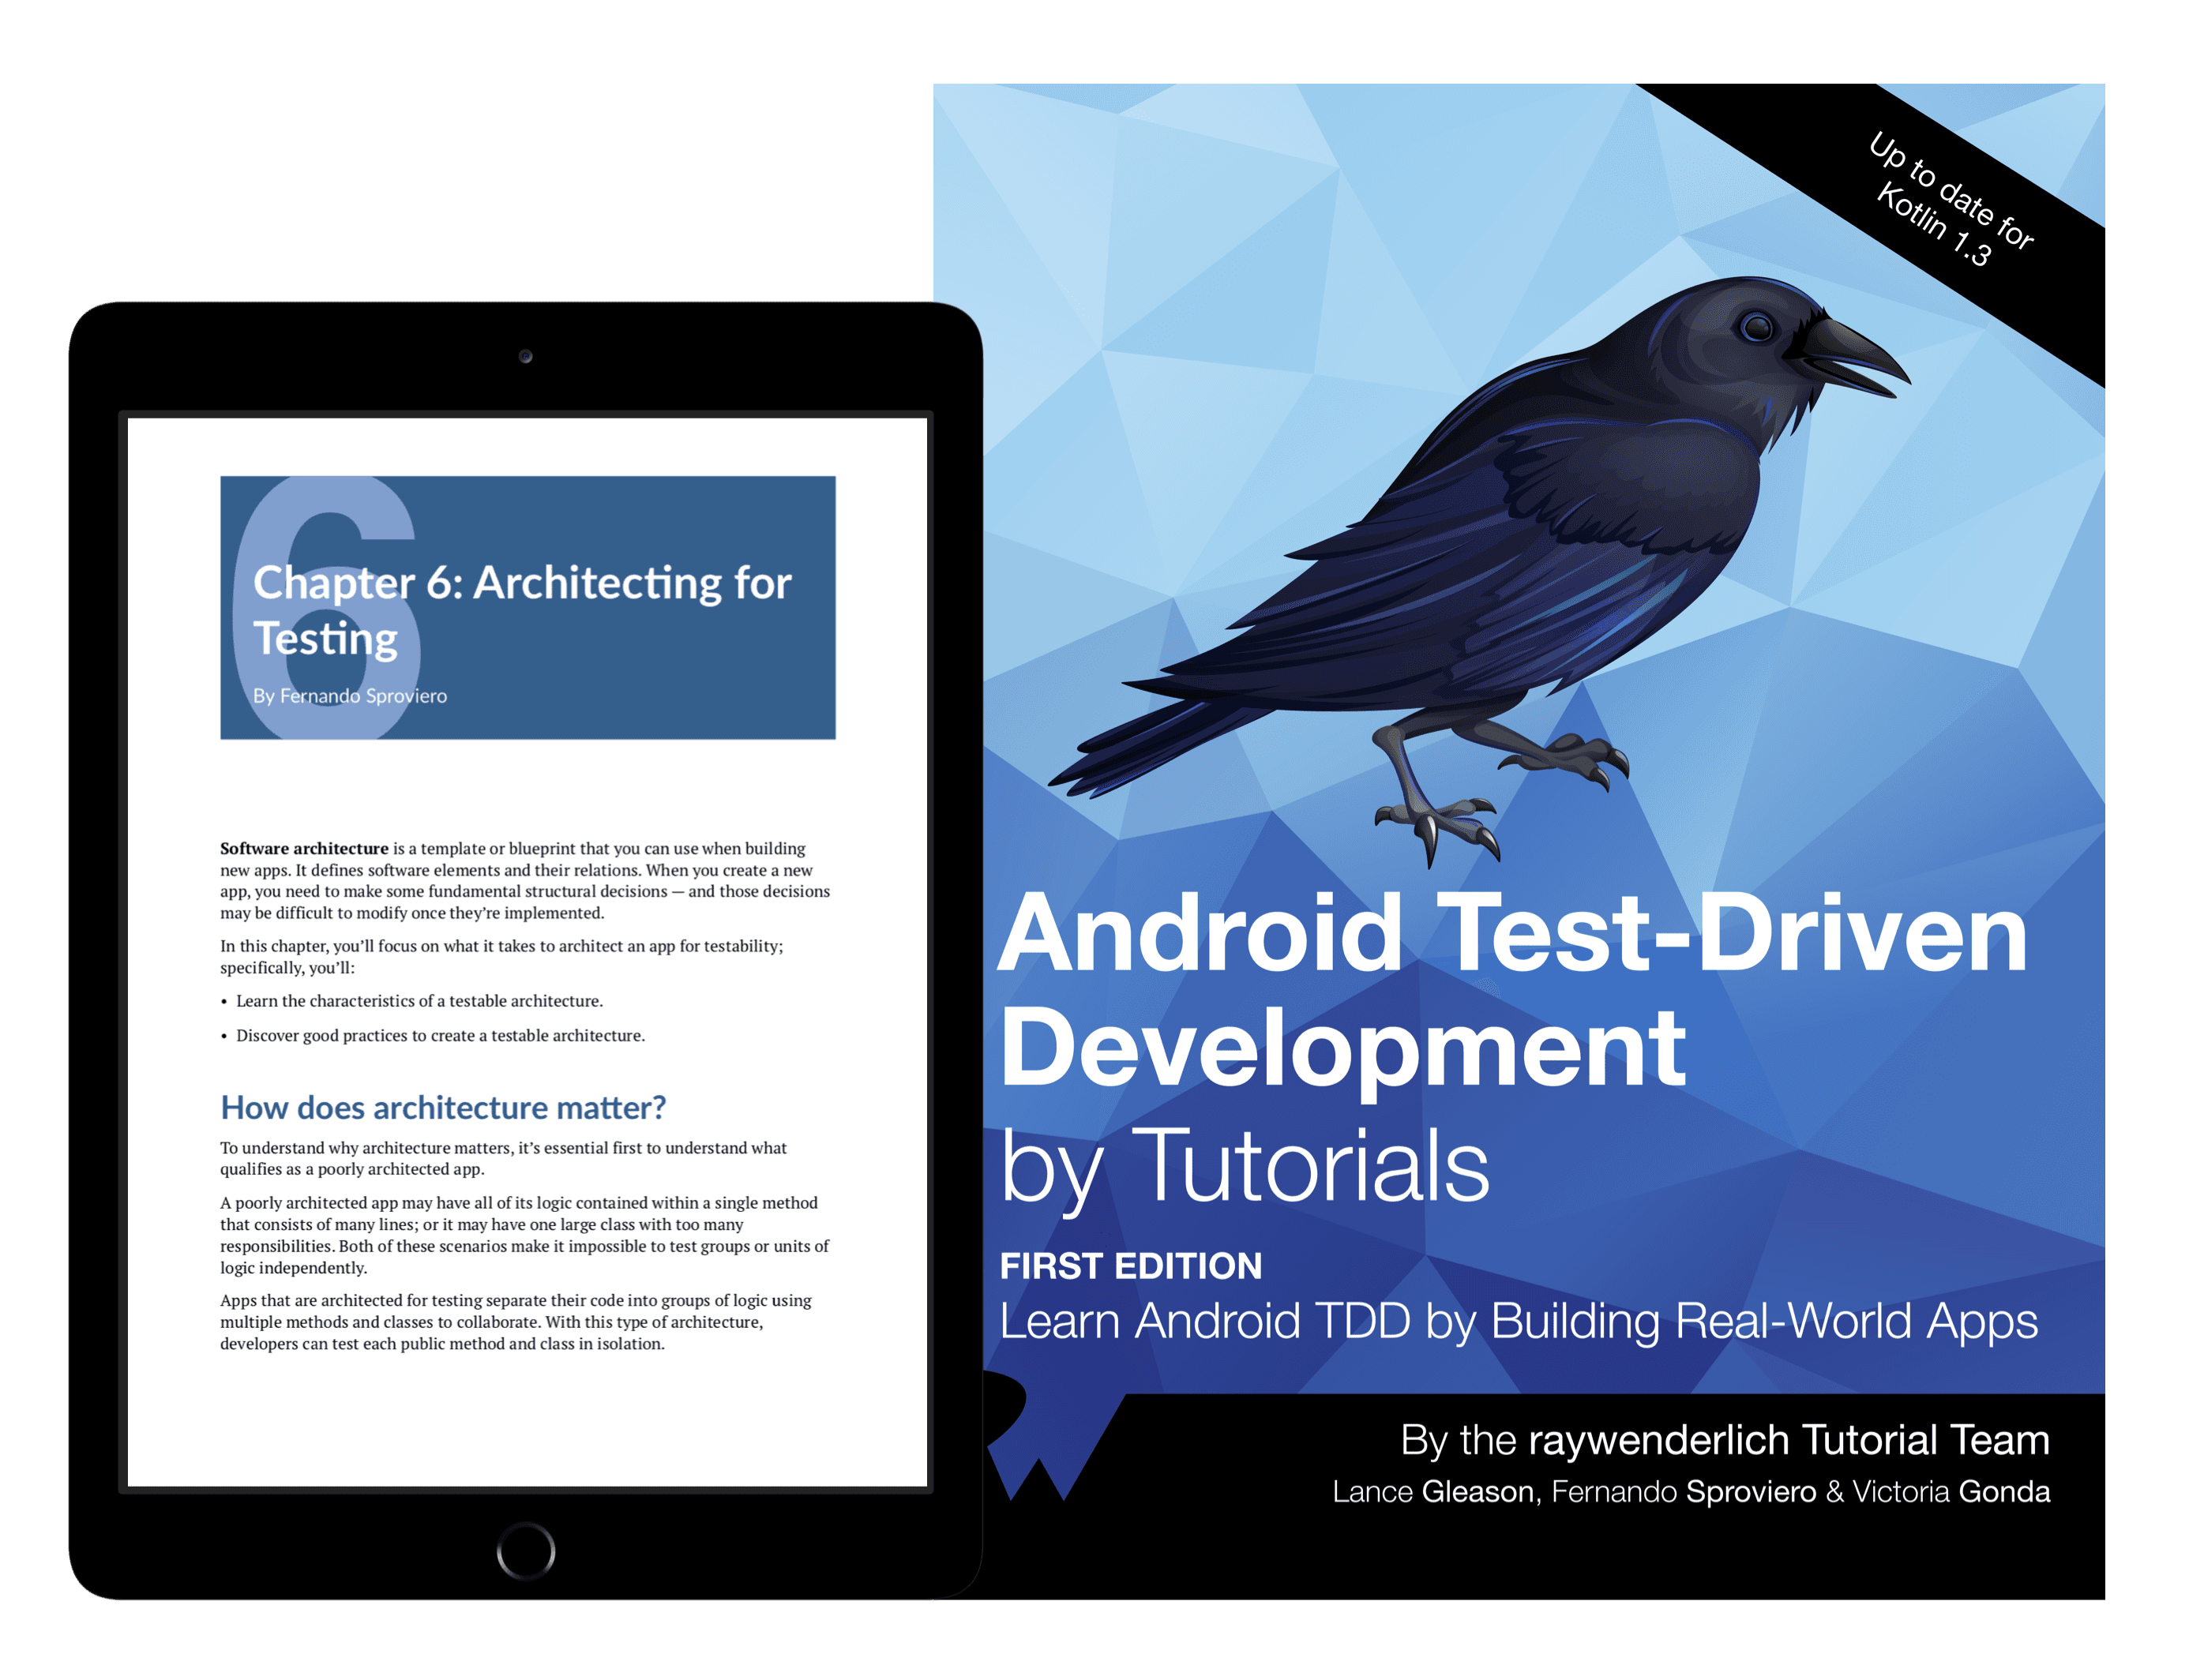 Android Test-Driven Development